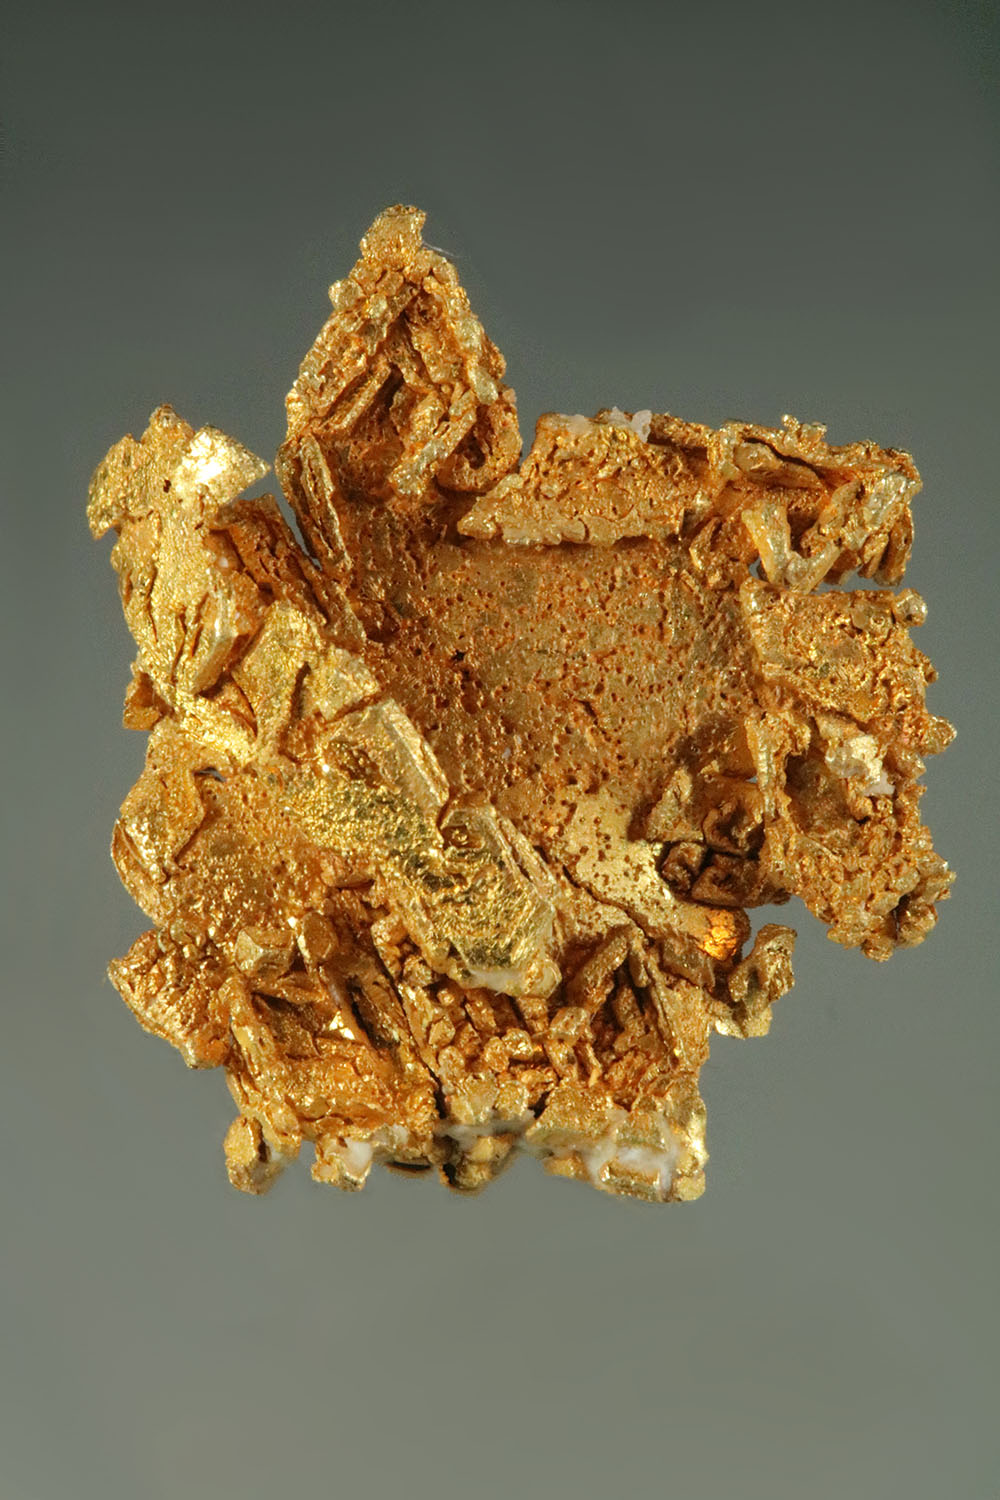 Hoppered Trigon Gold Crystal Specimen from Papua New Guinea